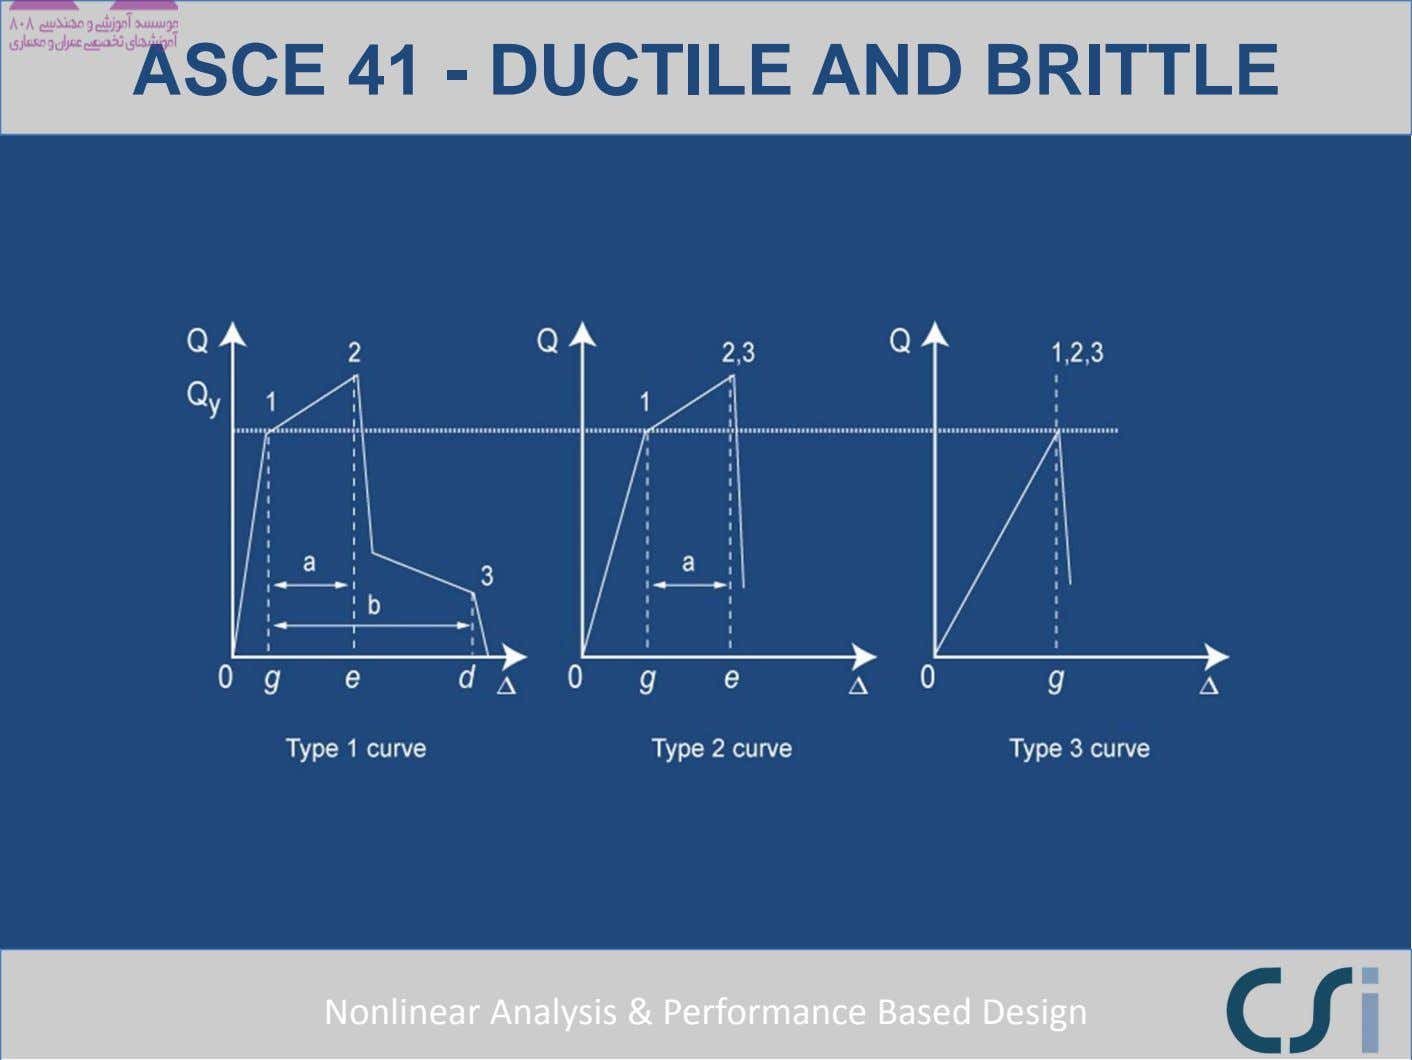 ASCE 41 - DUCTILE AND BRITTLE Nonlinear Analysis & Performance Based Design